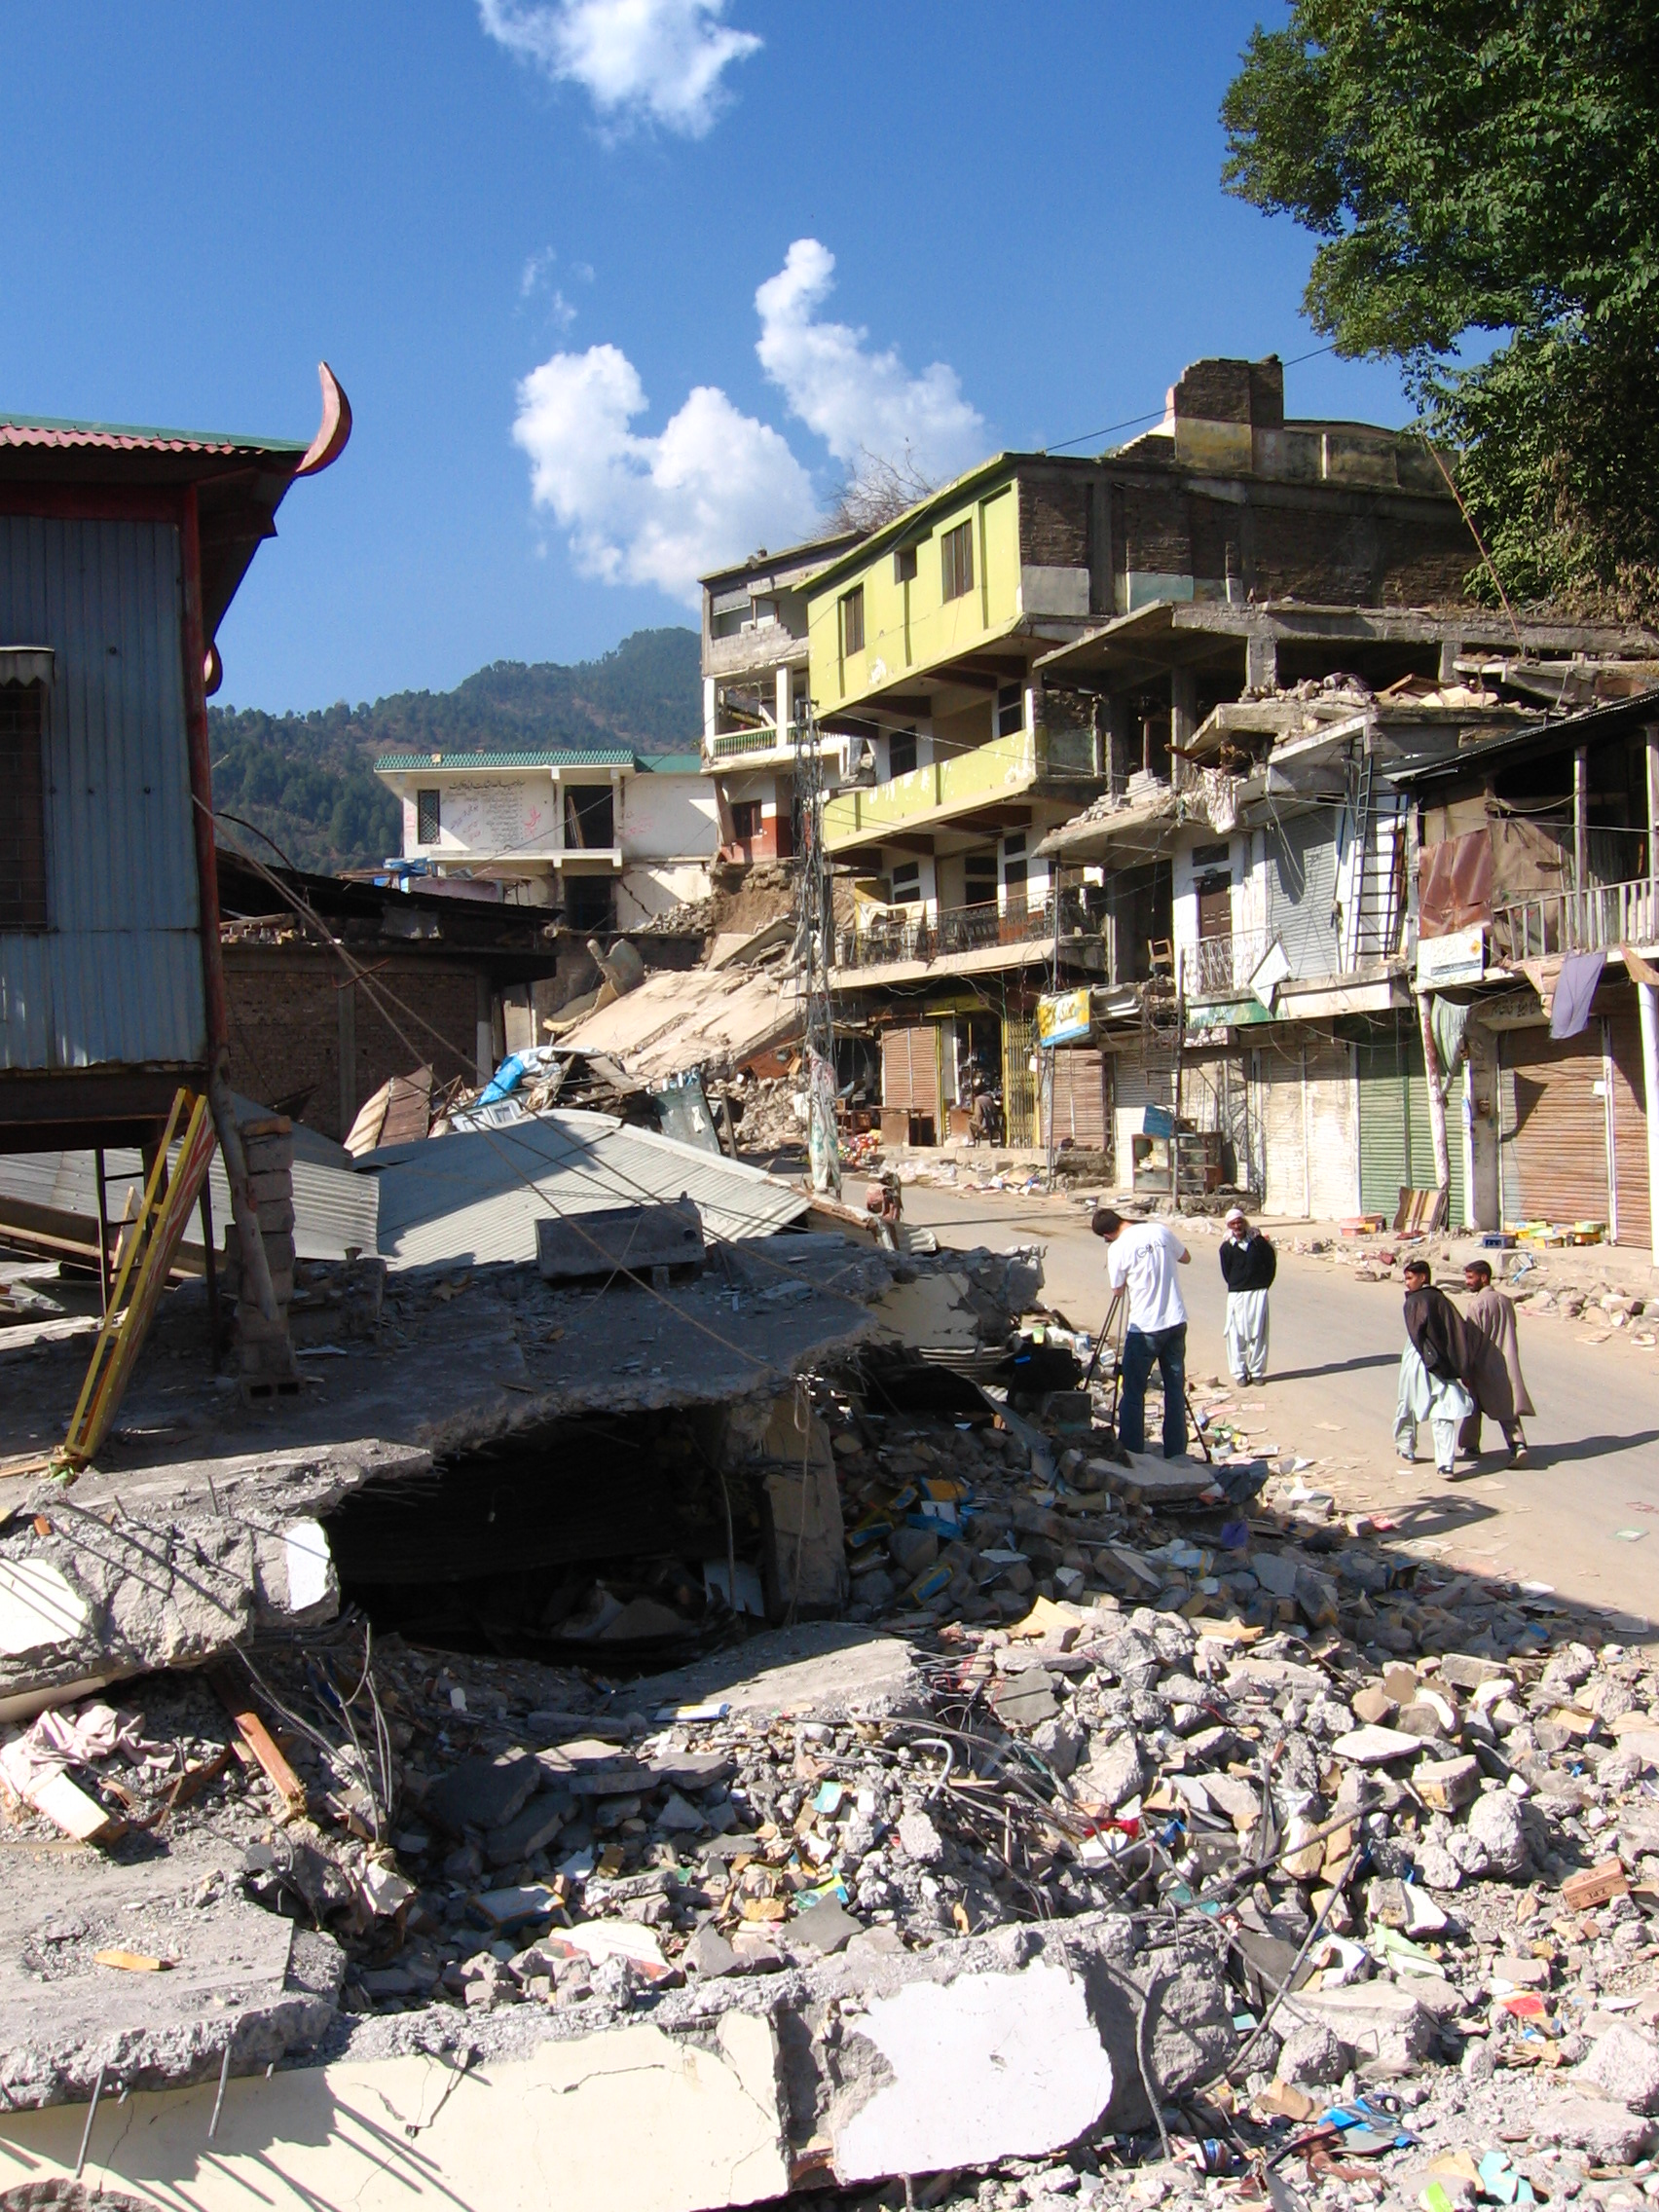 Kashmiri city of Bagh was badly-affected by the earthquake (Photo: Simon Roughneen)